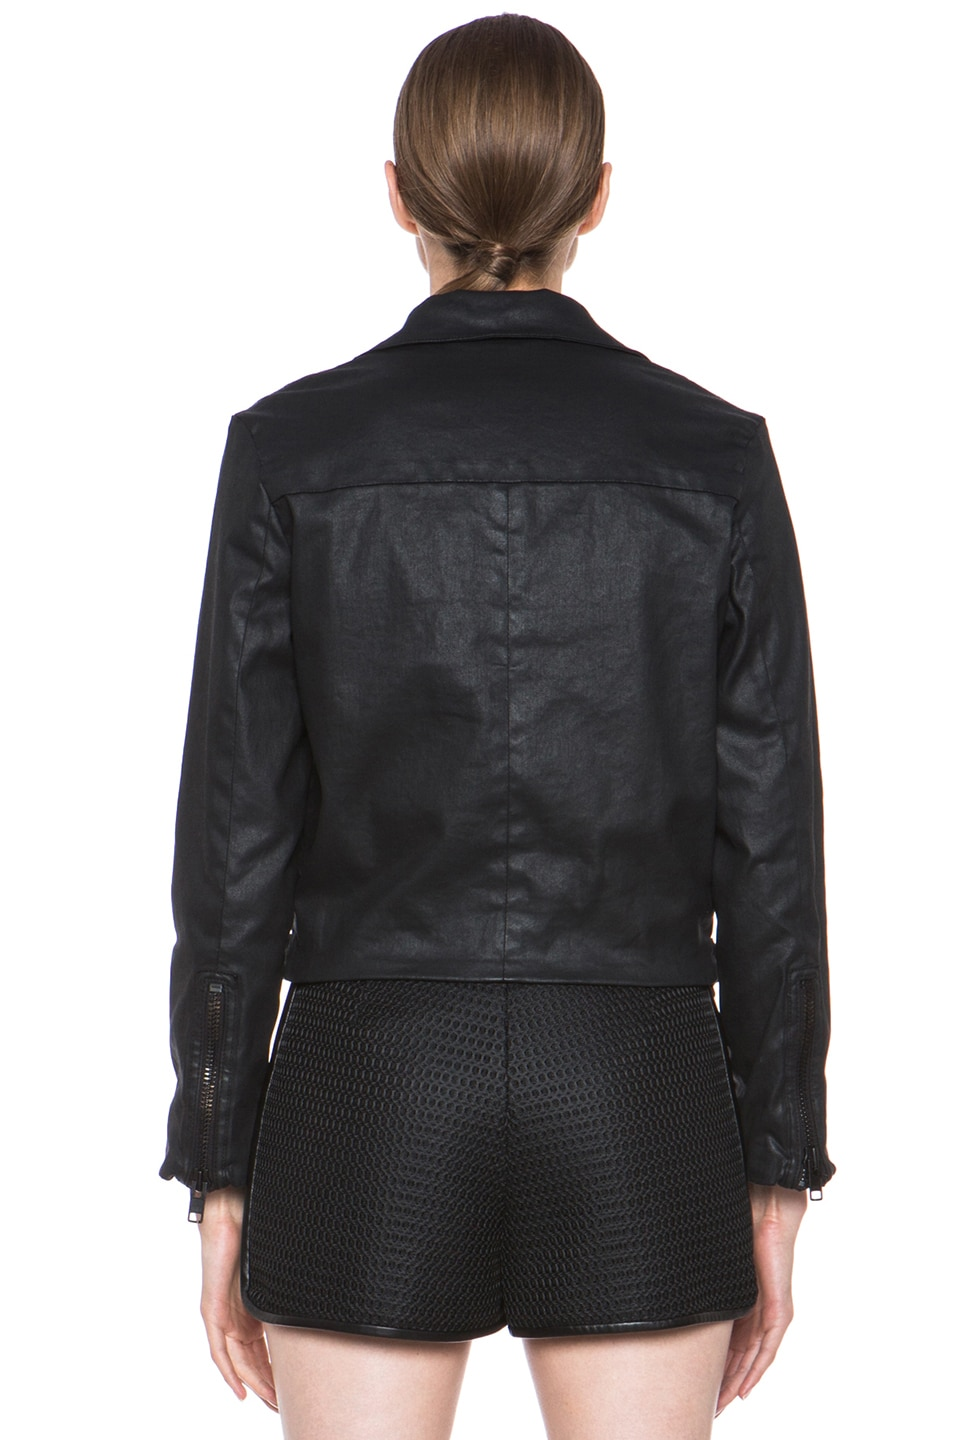 Image 5 of Current/Elliott Better Than Leather Soho Cotton Biker Jacket in Black